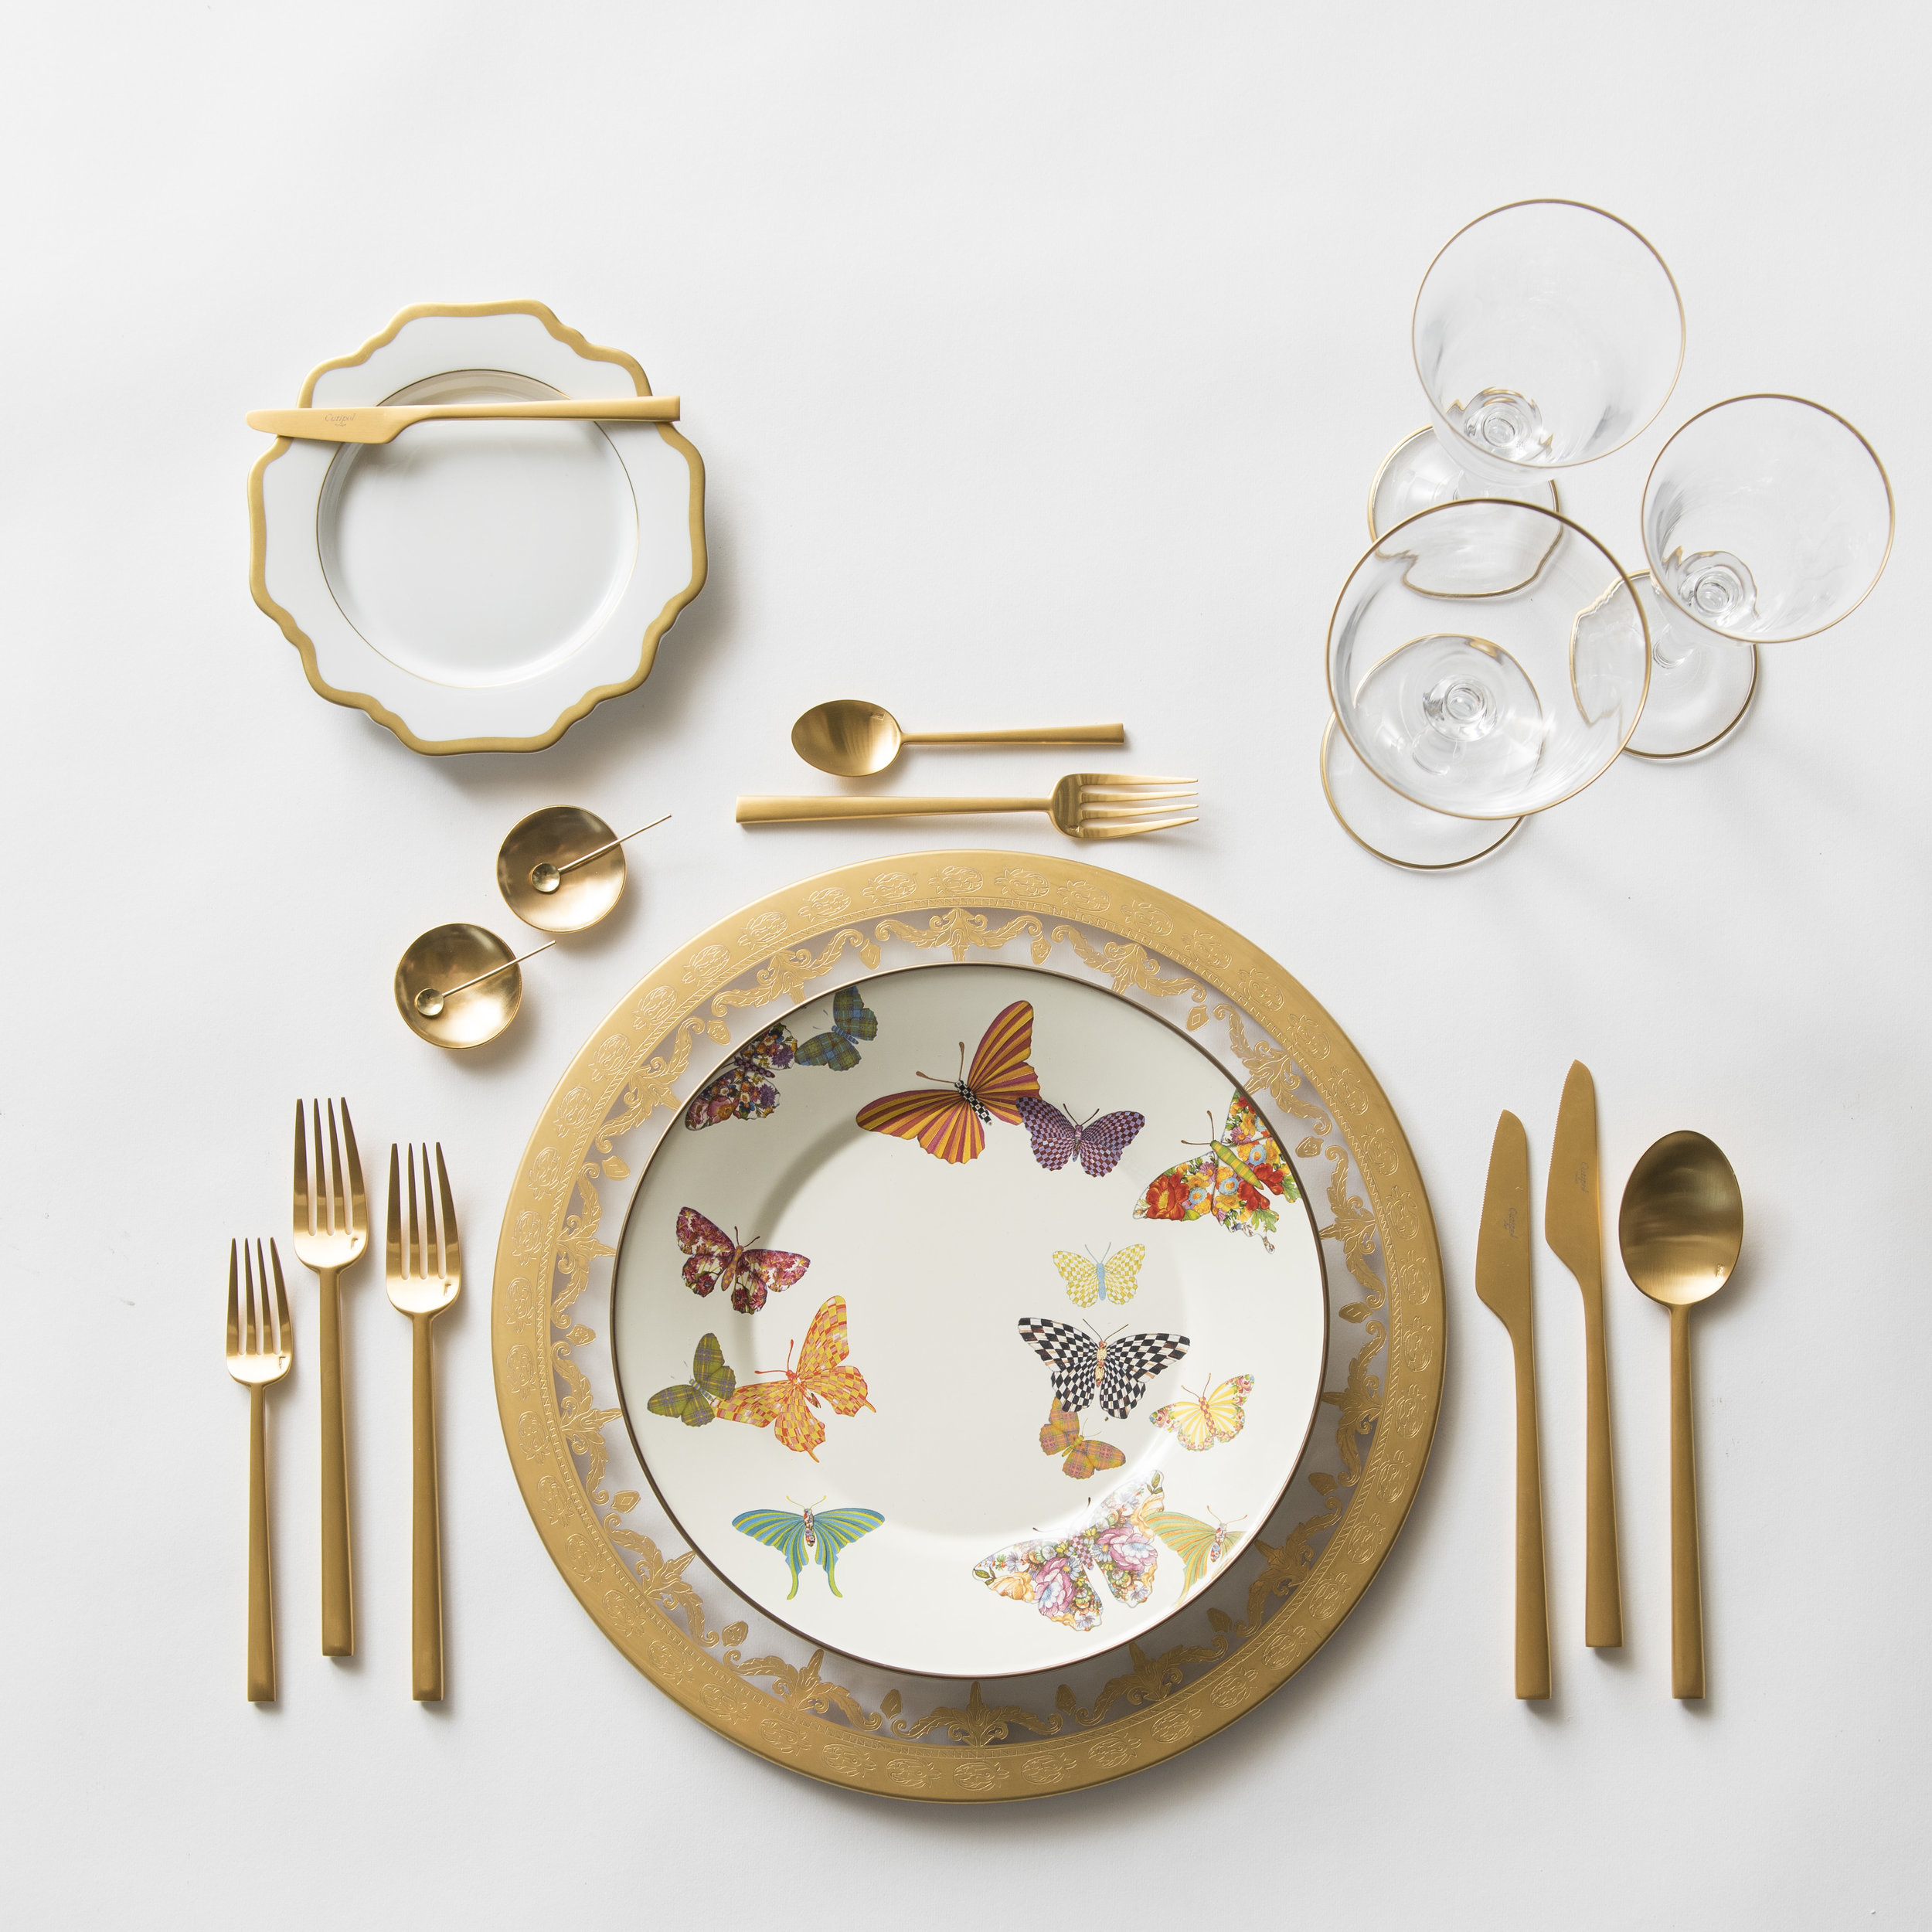 RENT: Versailles Glass Chargers in 24k Gold + Anna Weatherley Dinnerware in White/Gold + MacKenzie-Childs Butterfly Garden Collection + Rondo Flatware in Brushed 24k Gold + Chloe 24k Gold Rimmed Stemware + 14k Gold Salt Cellars + Tiny Gold Spoons   SHOP: Anna Weatherley Dinnerware in White/Gold + Rondo Flatware in Brushed 24k Gold + Chloe 24k Gold Rimmed Stemware + 14k Gold Salt Cellars + Tiny Gold Spoons